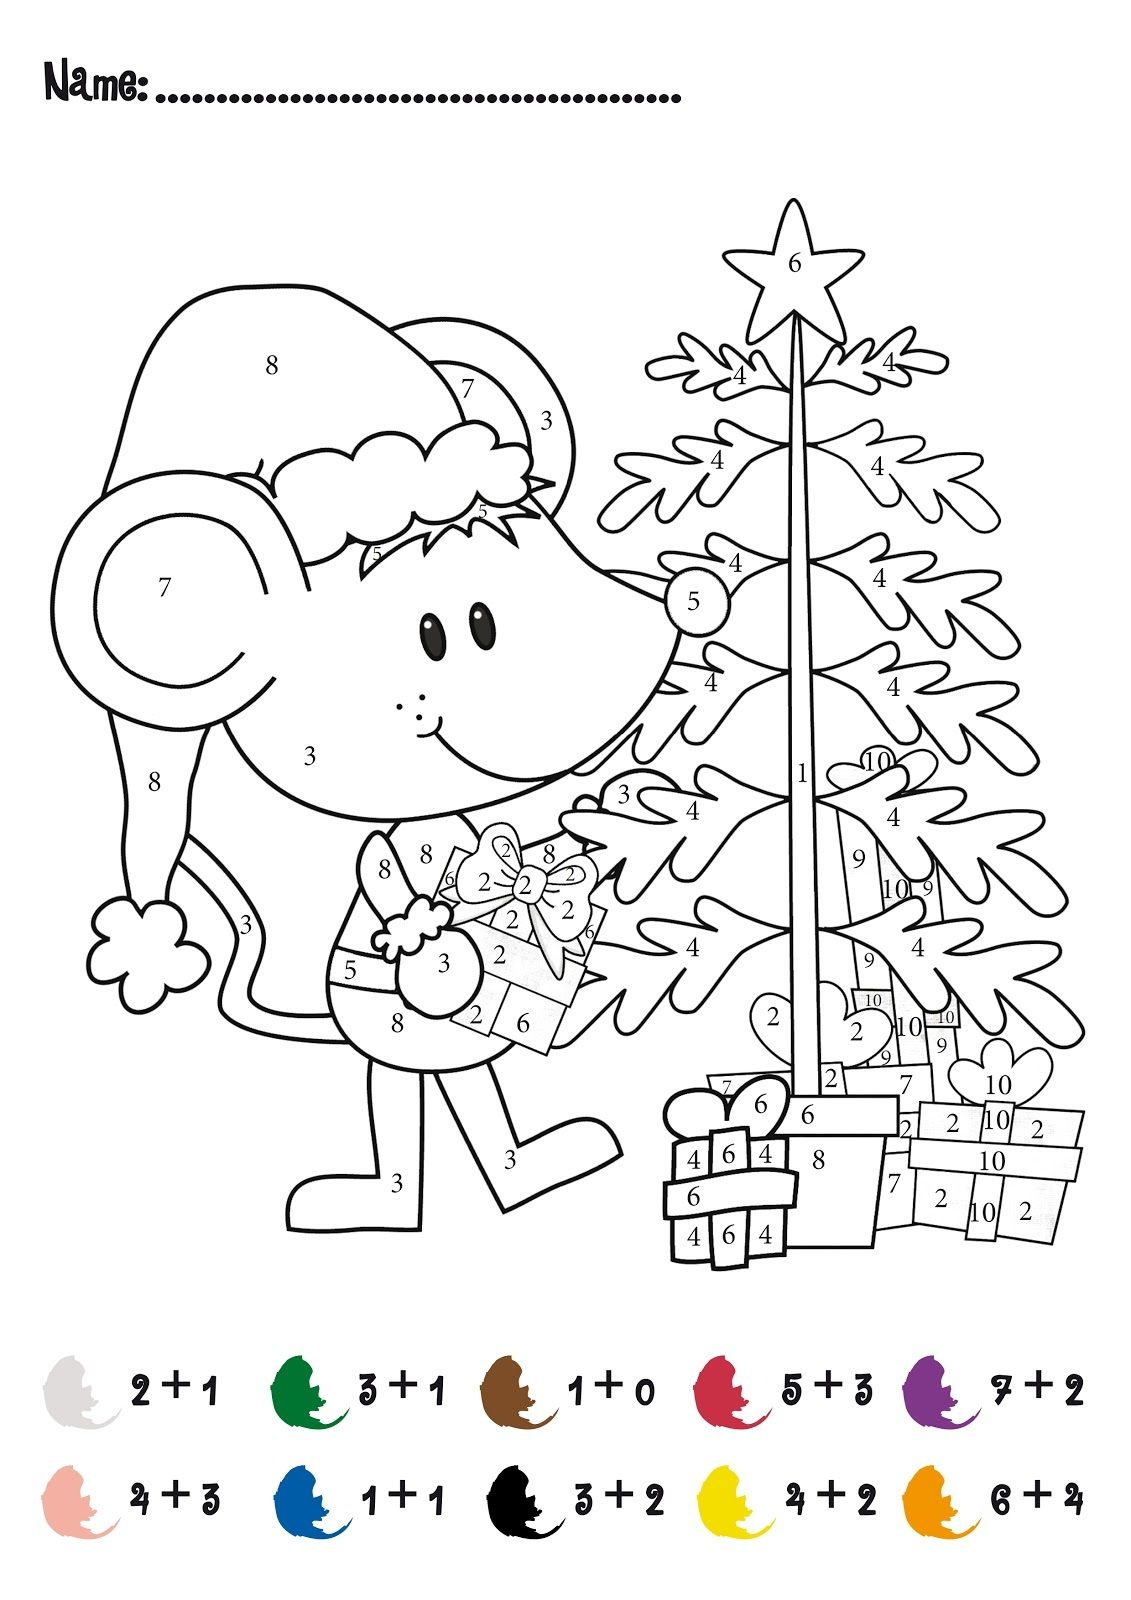 Fun Math Sheets for Playful Learning Kiddo Shelter – Fun Christmas Math Worksheets